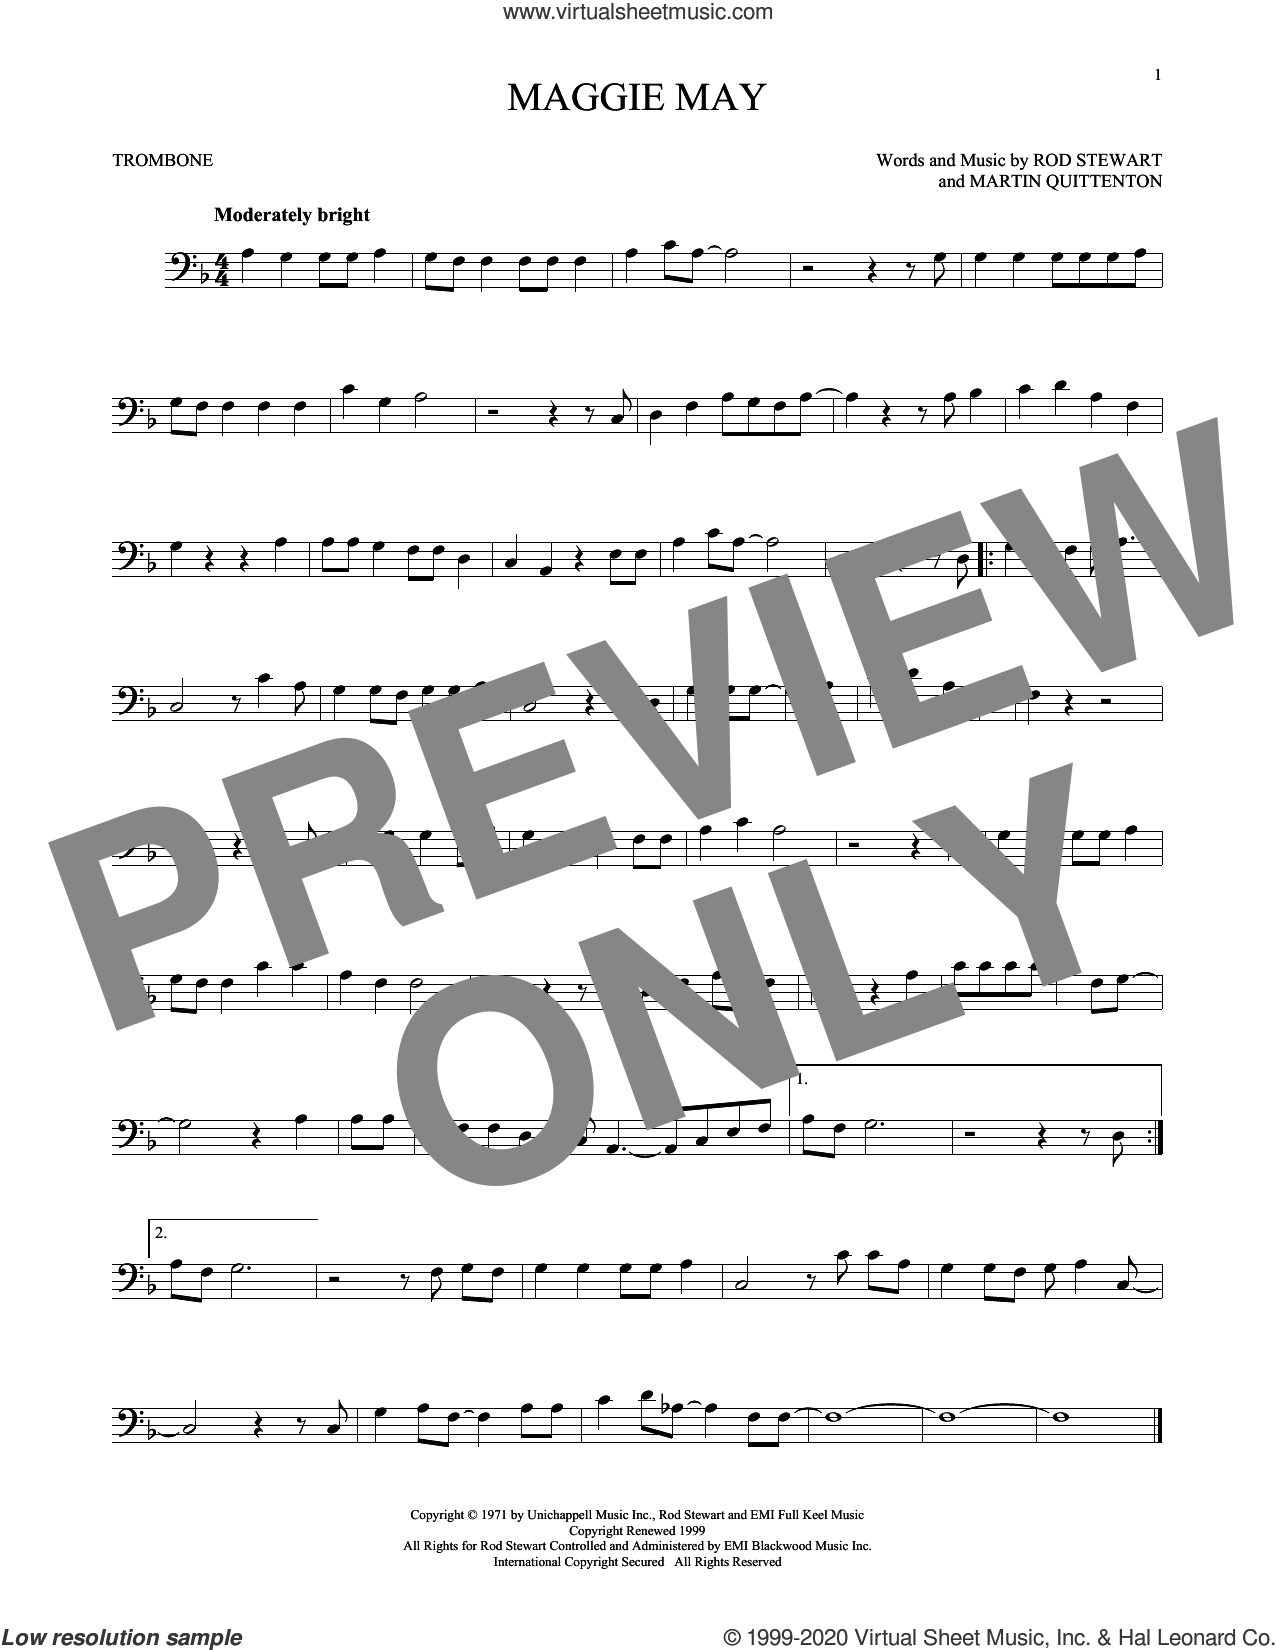 Maggie May sheet music for trombone solo by Rod Stewart and Martin Quittenton, intermediate skill level